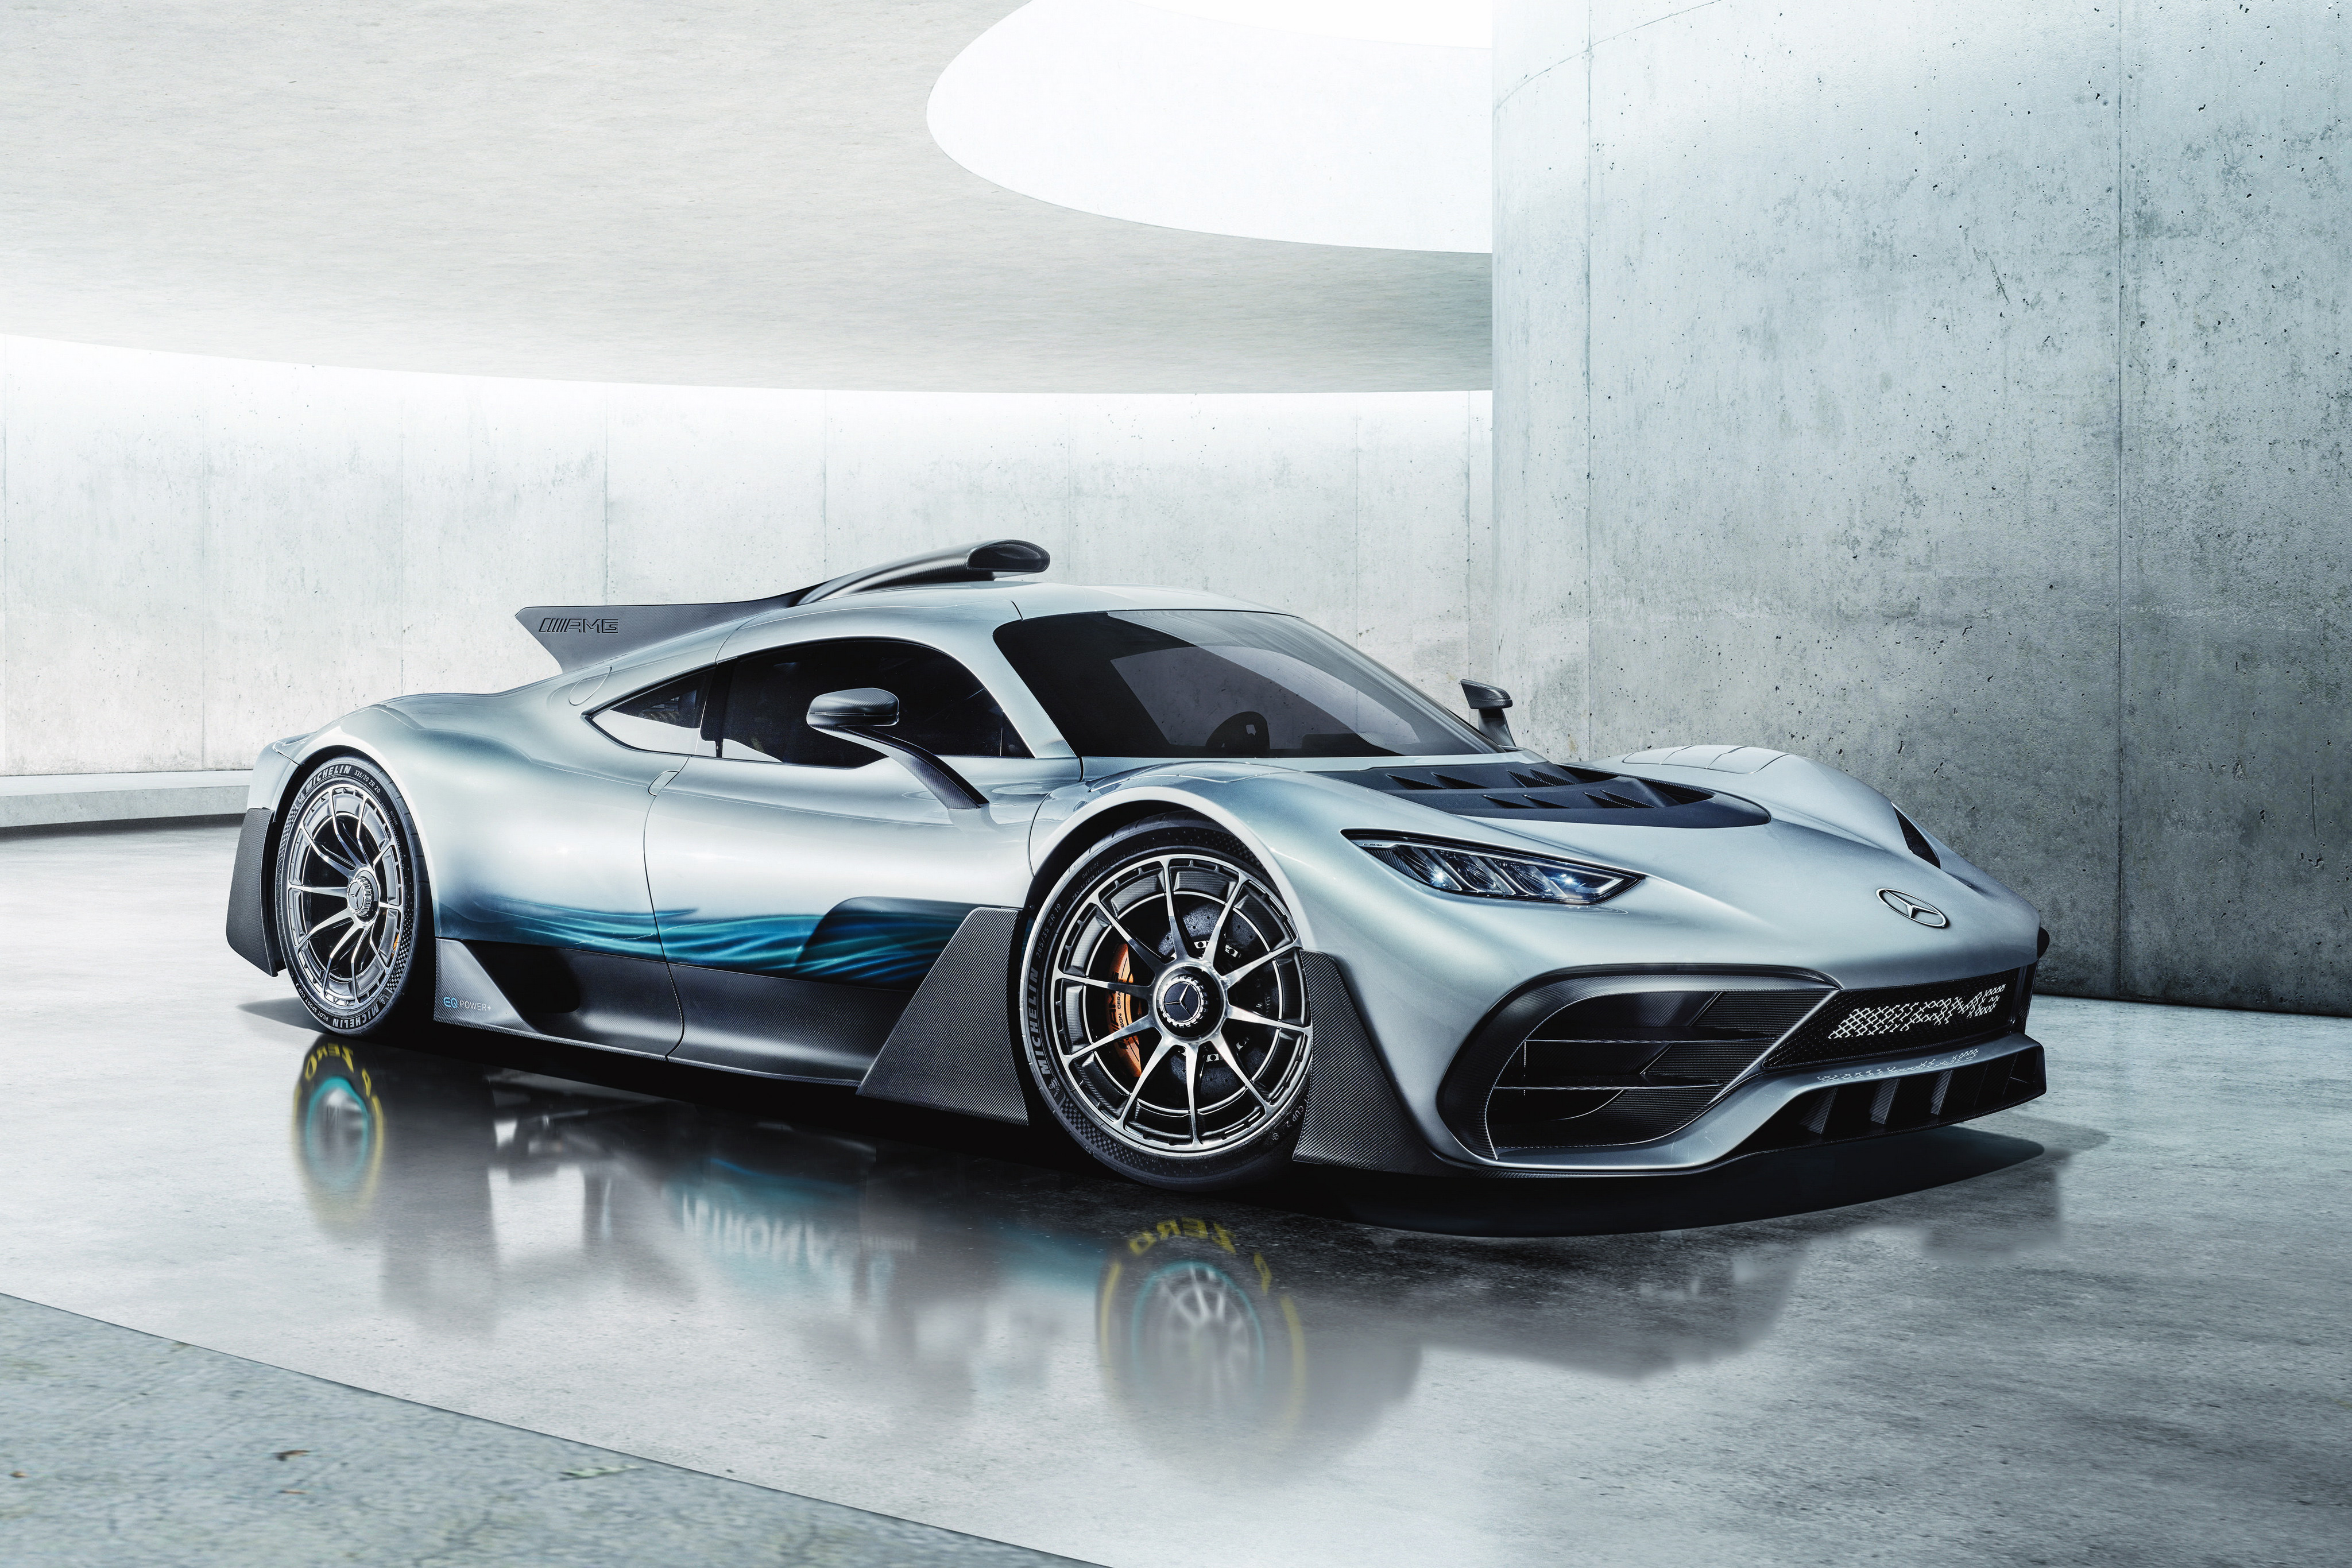 Mercedes amg project one 2018 hd cars 4k wallpapers for Mercedes benz amg project one